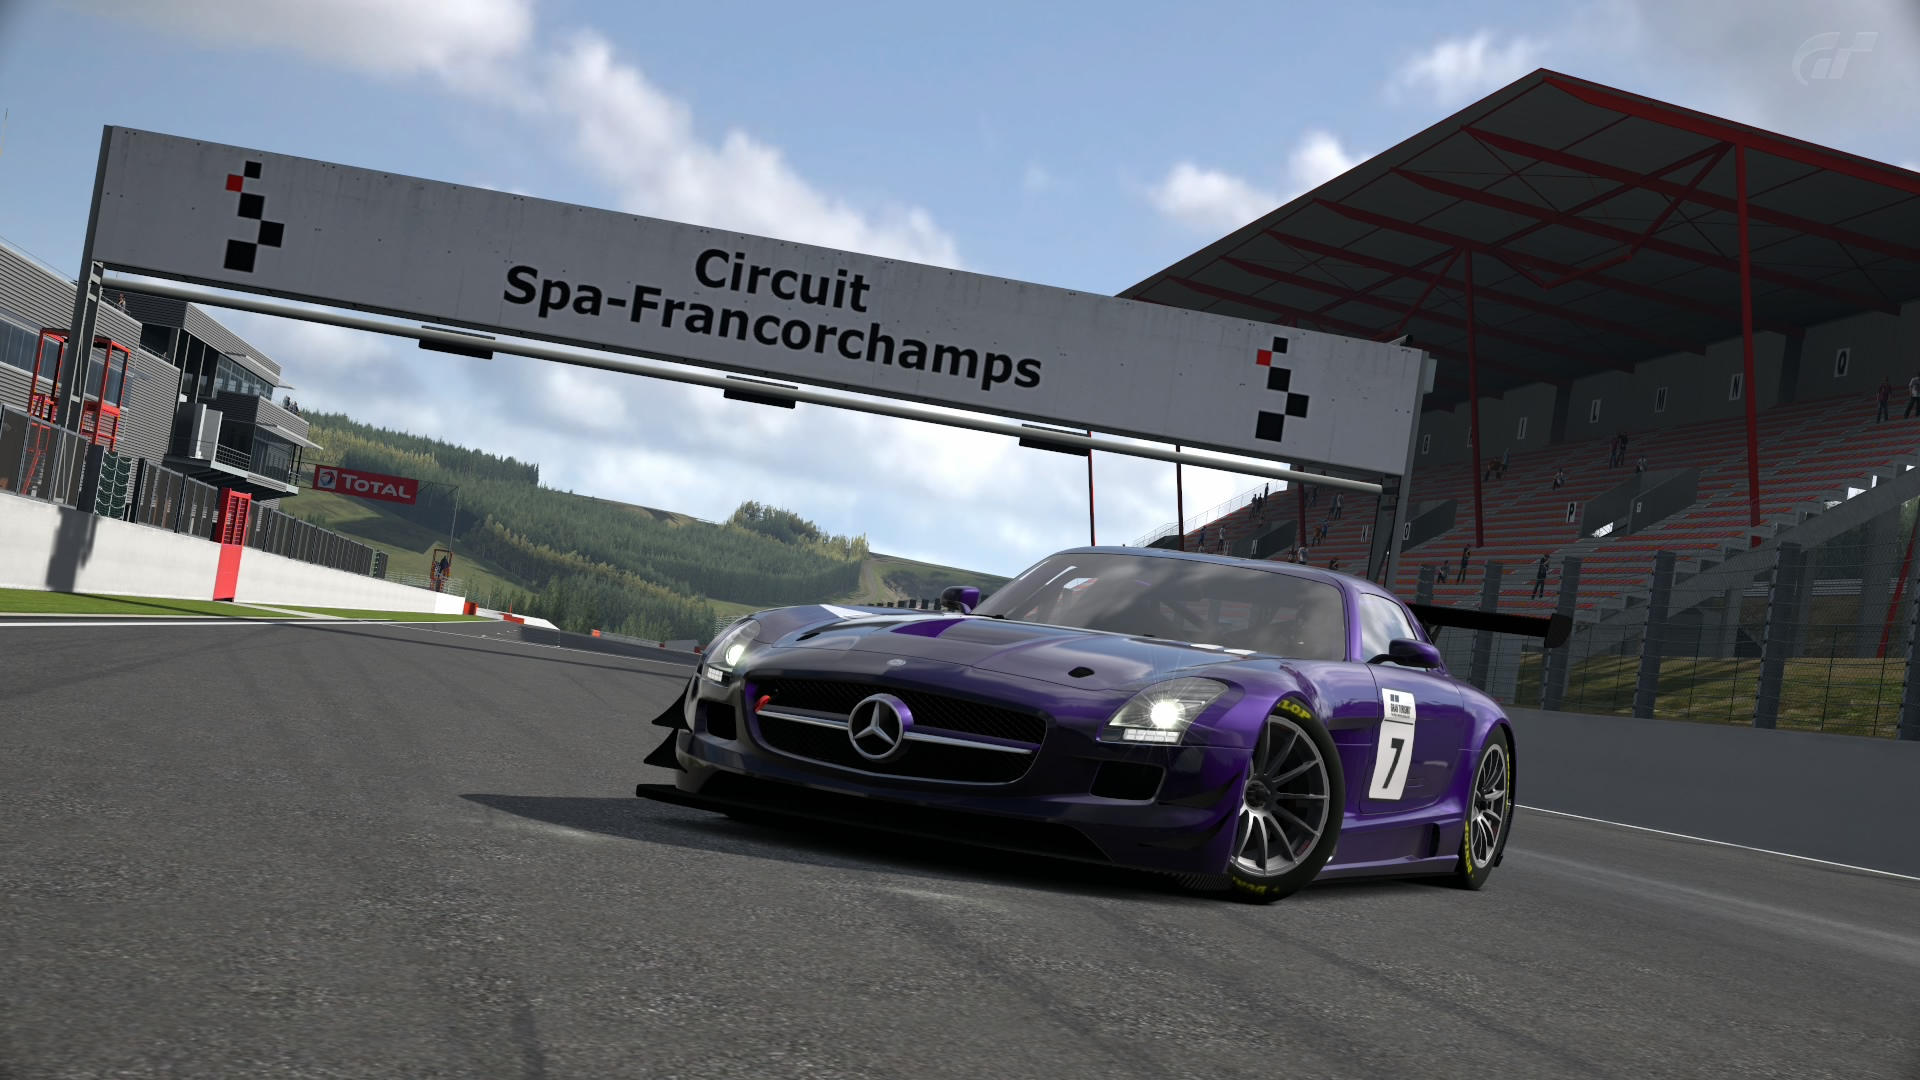 Circuit de spa francorchamps 31